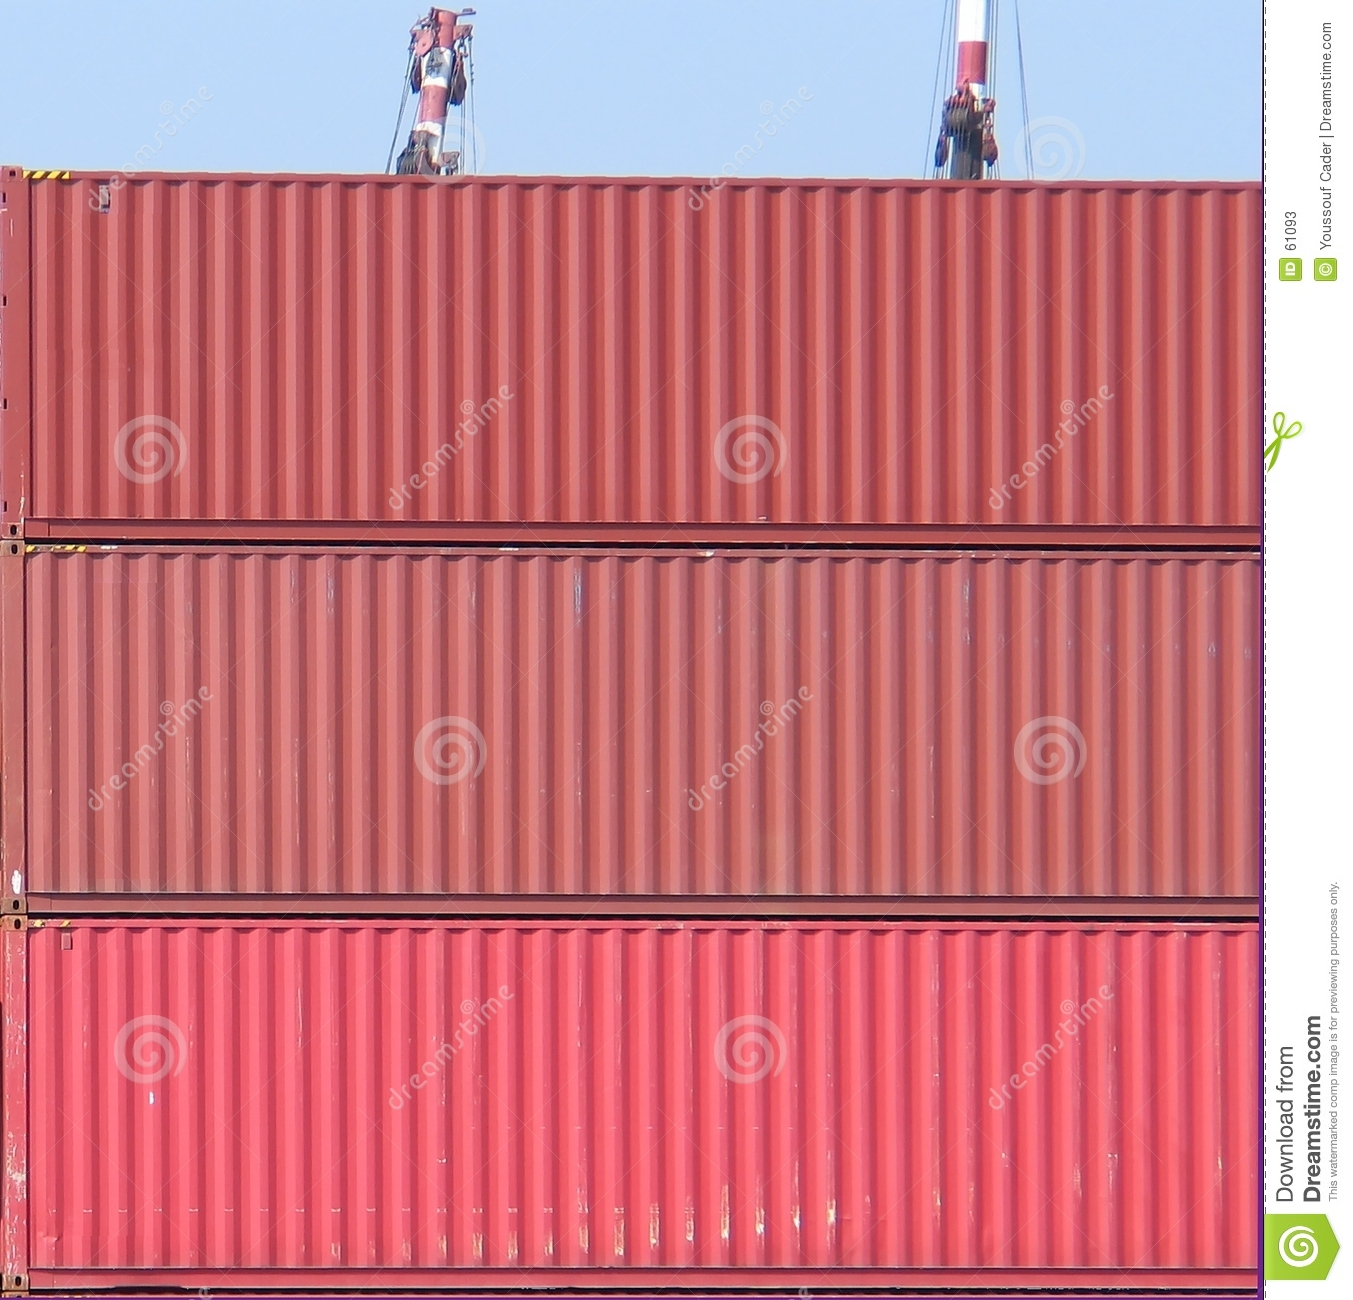 Container Background-9253